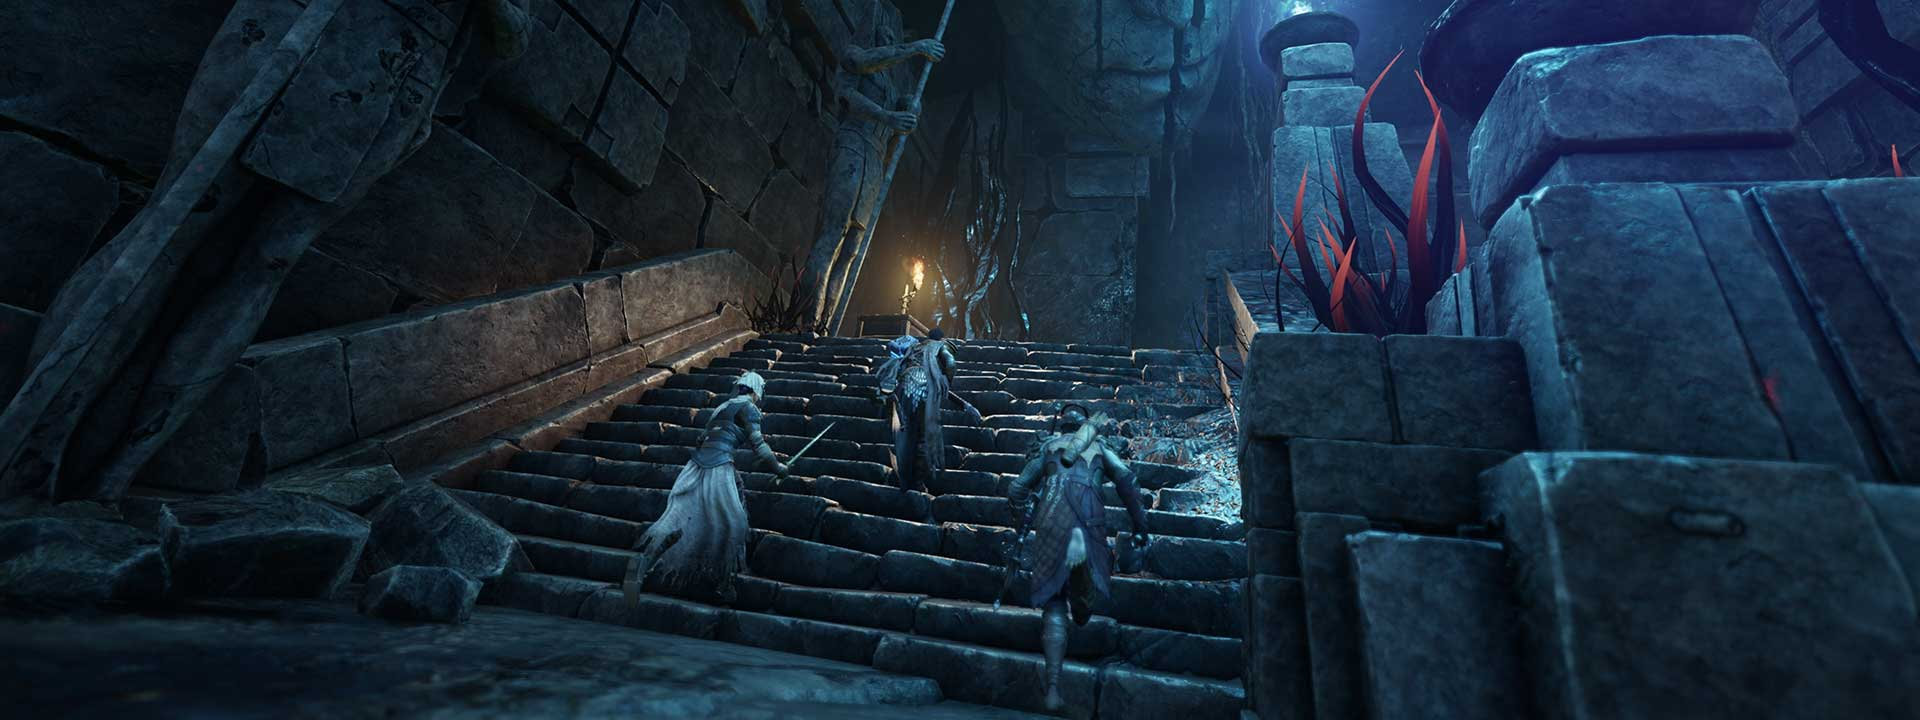 A group of adventurers with their weapons draw race up a flight of ancient stone stairs. The stairway is dimly lit with blue and orange flame sconces.